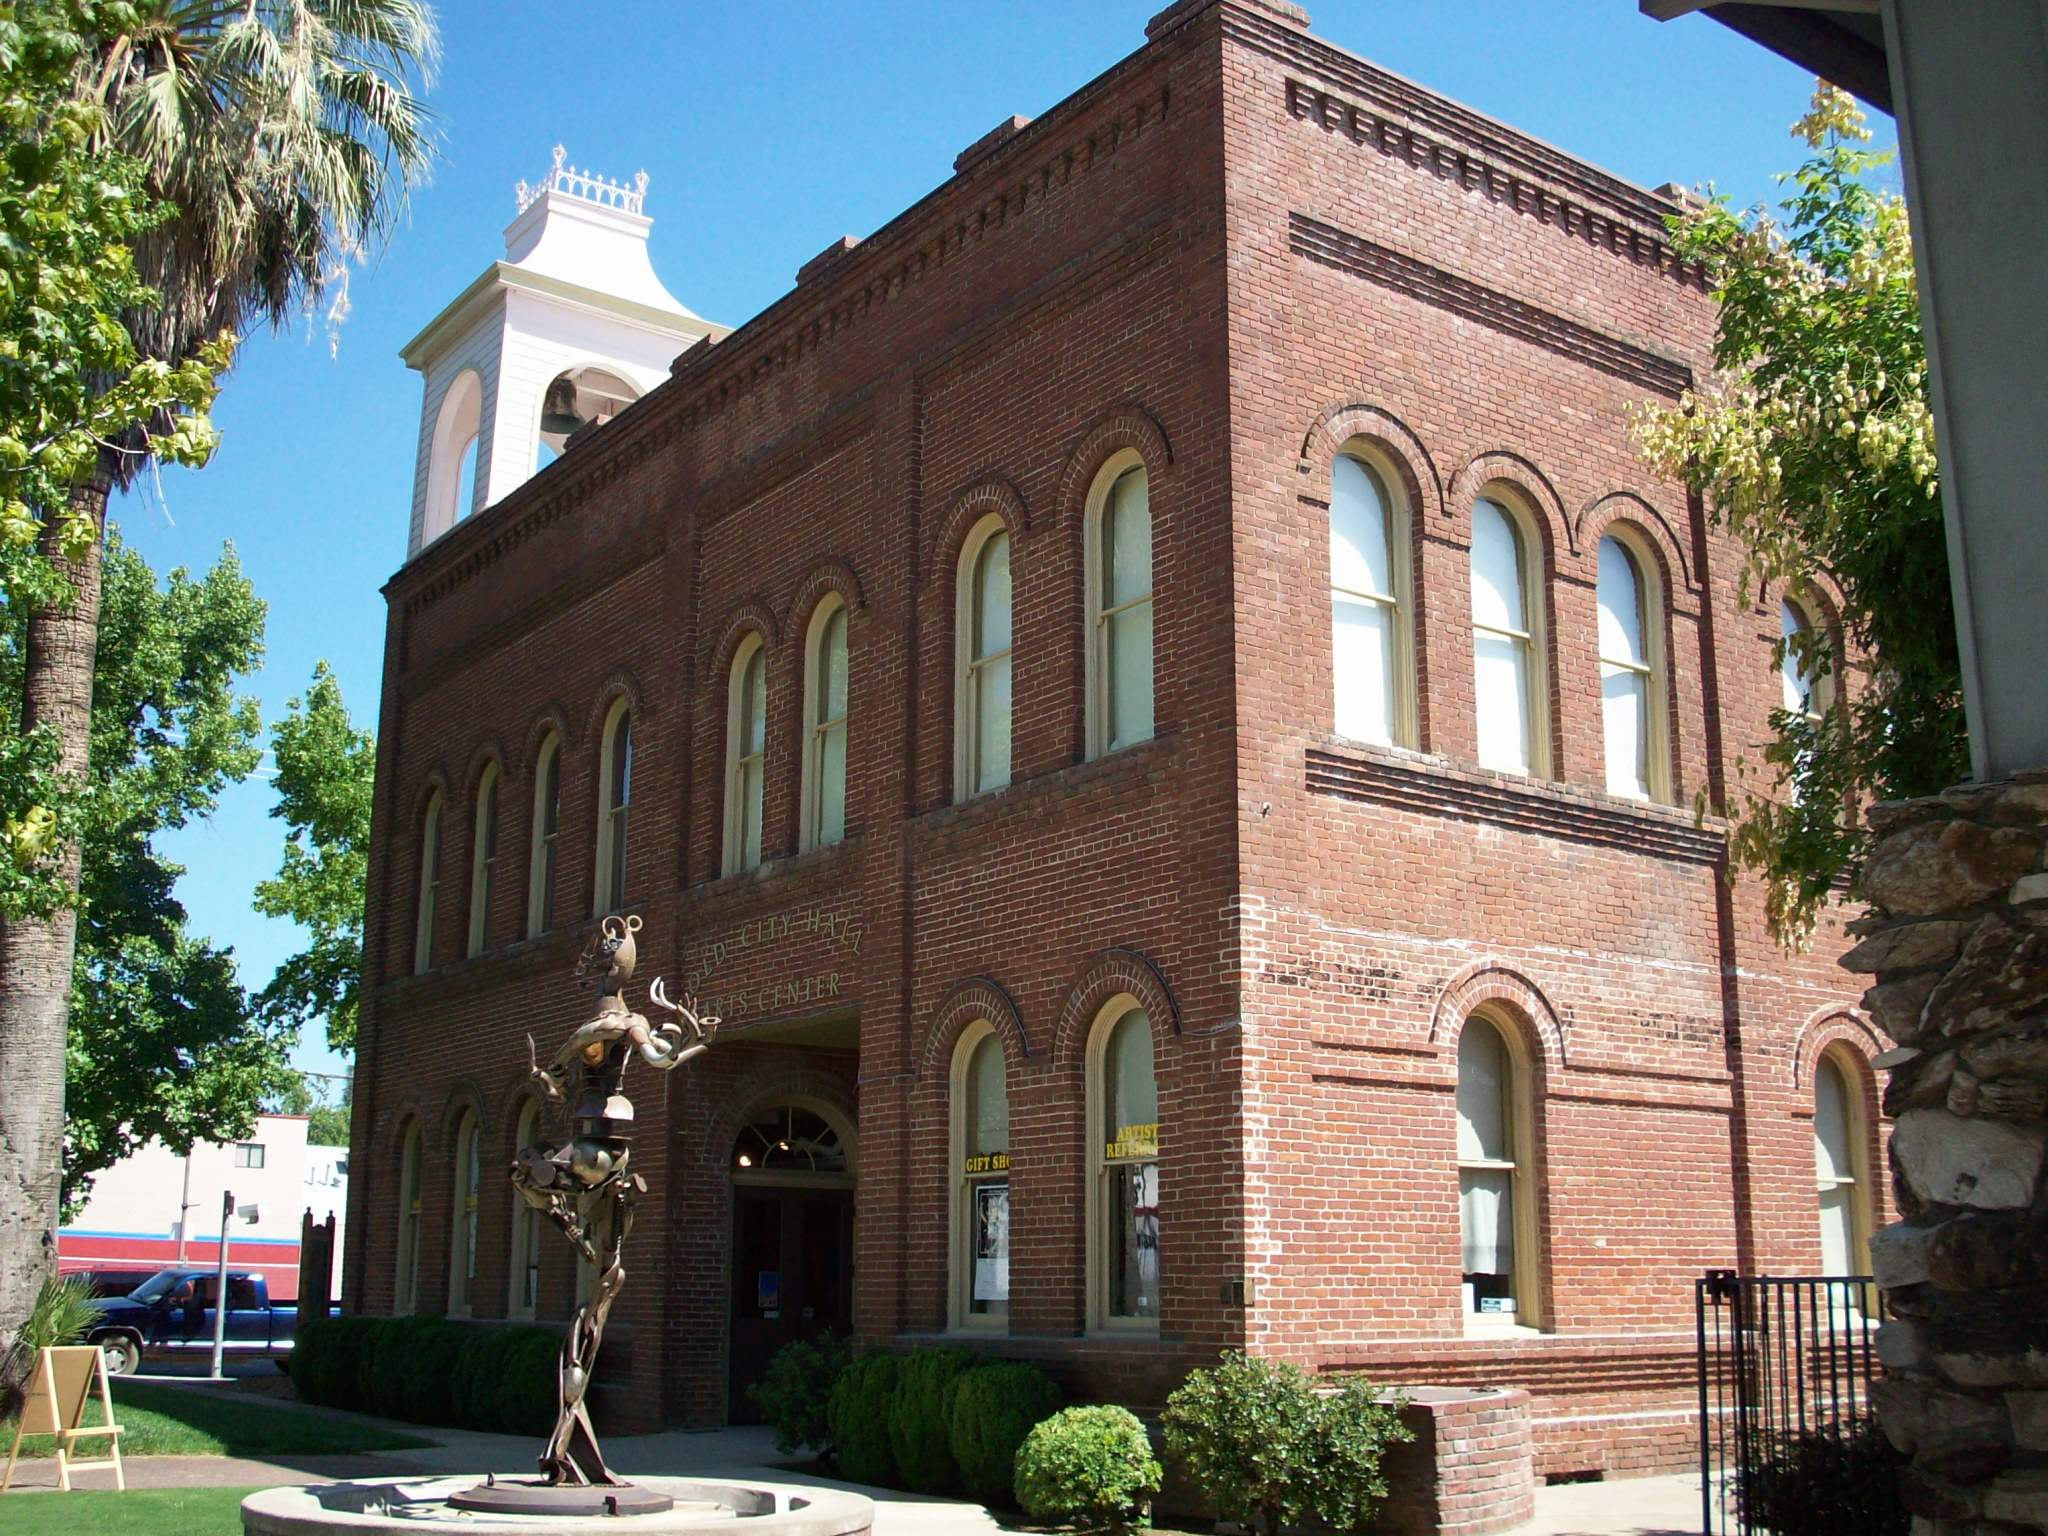 Old City Hall, now the Shasta County Arts Council